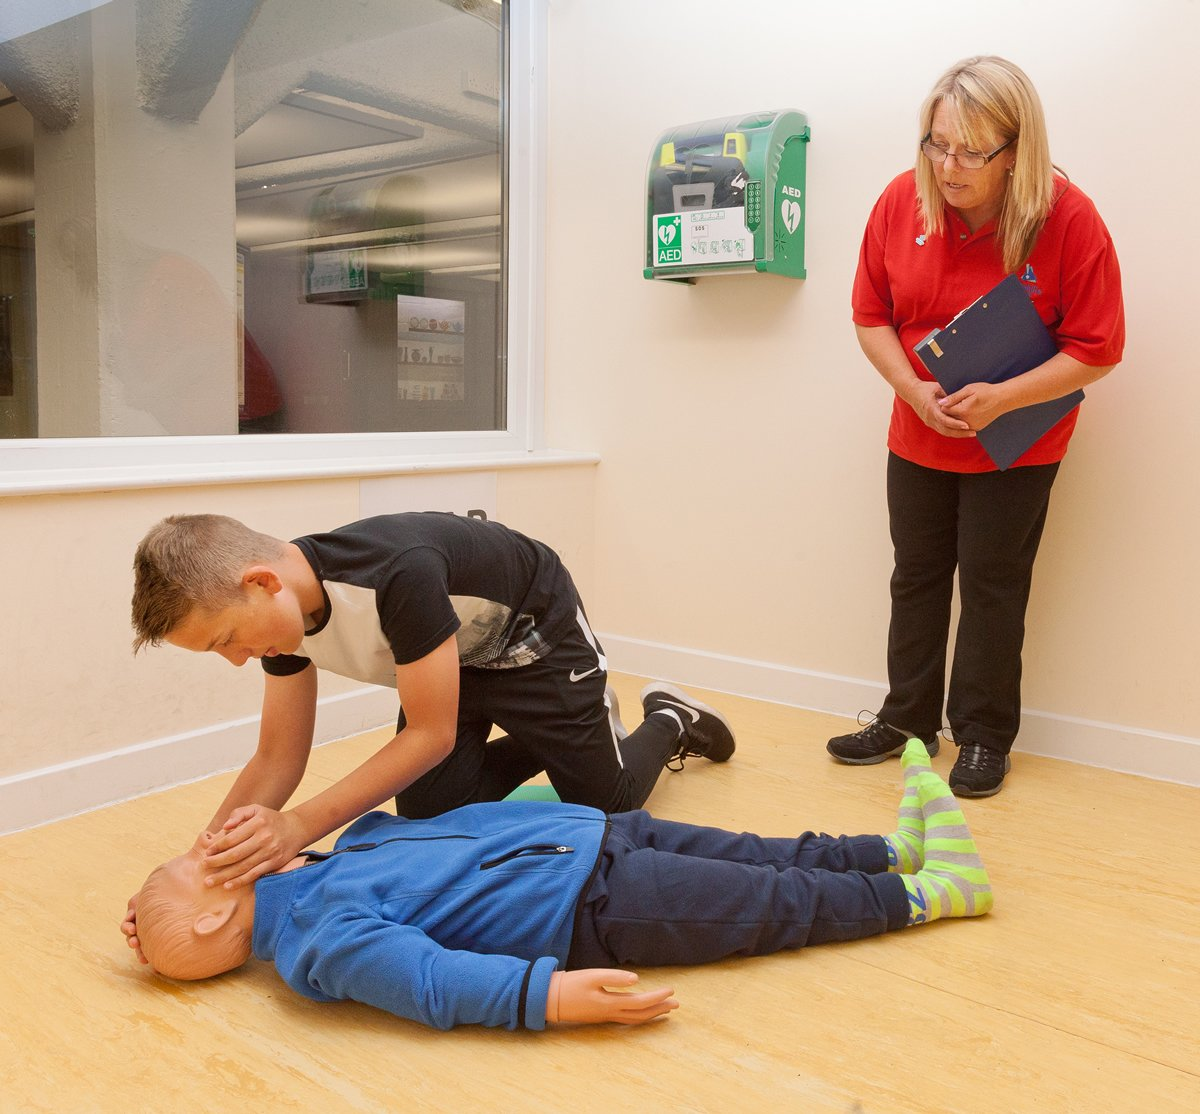 A boy learns resuscitation techniques and is leaning over a dummy of a child